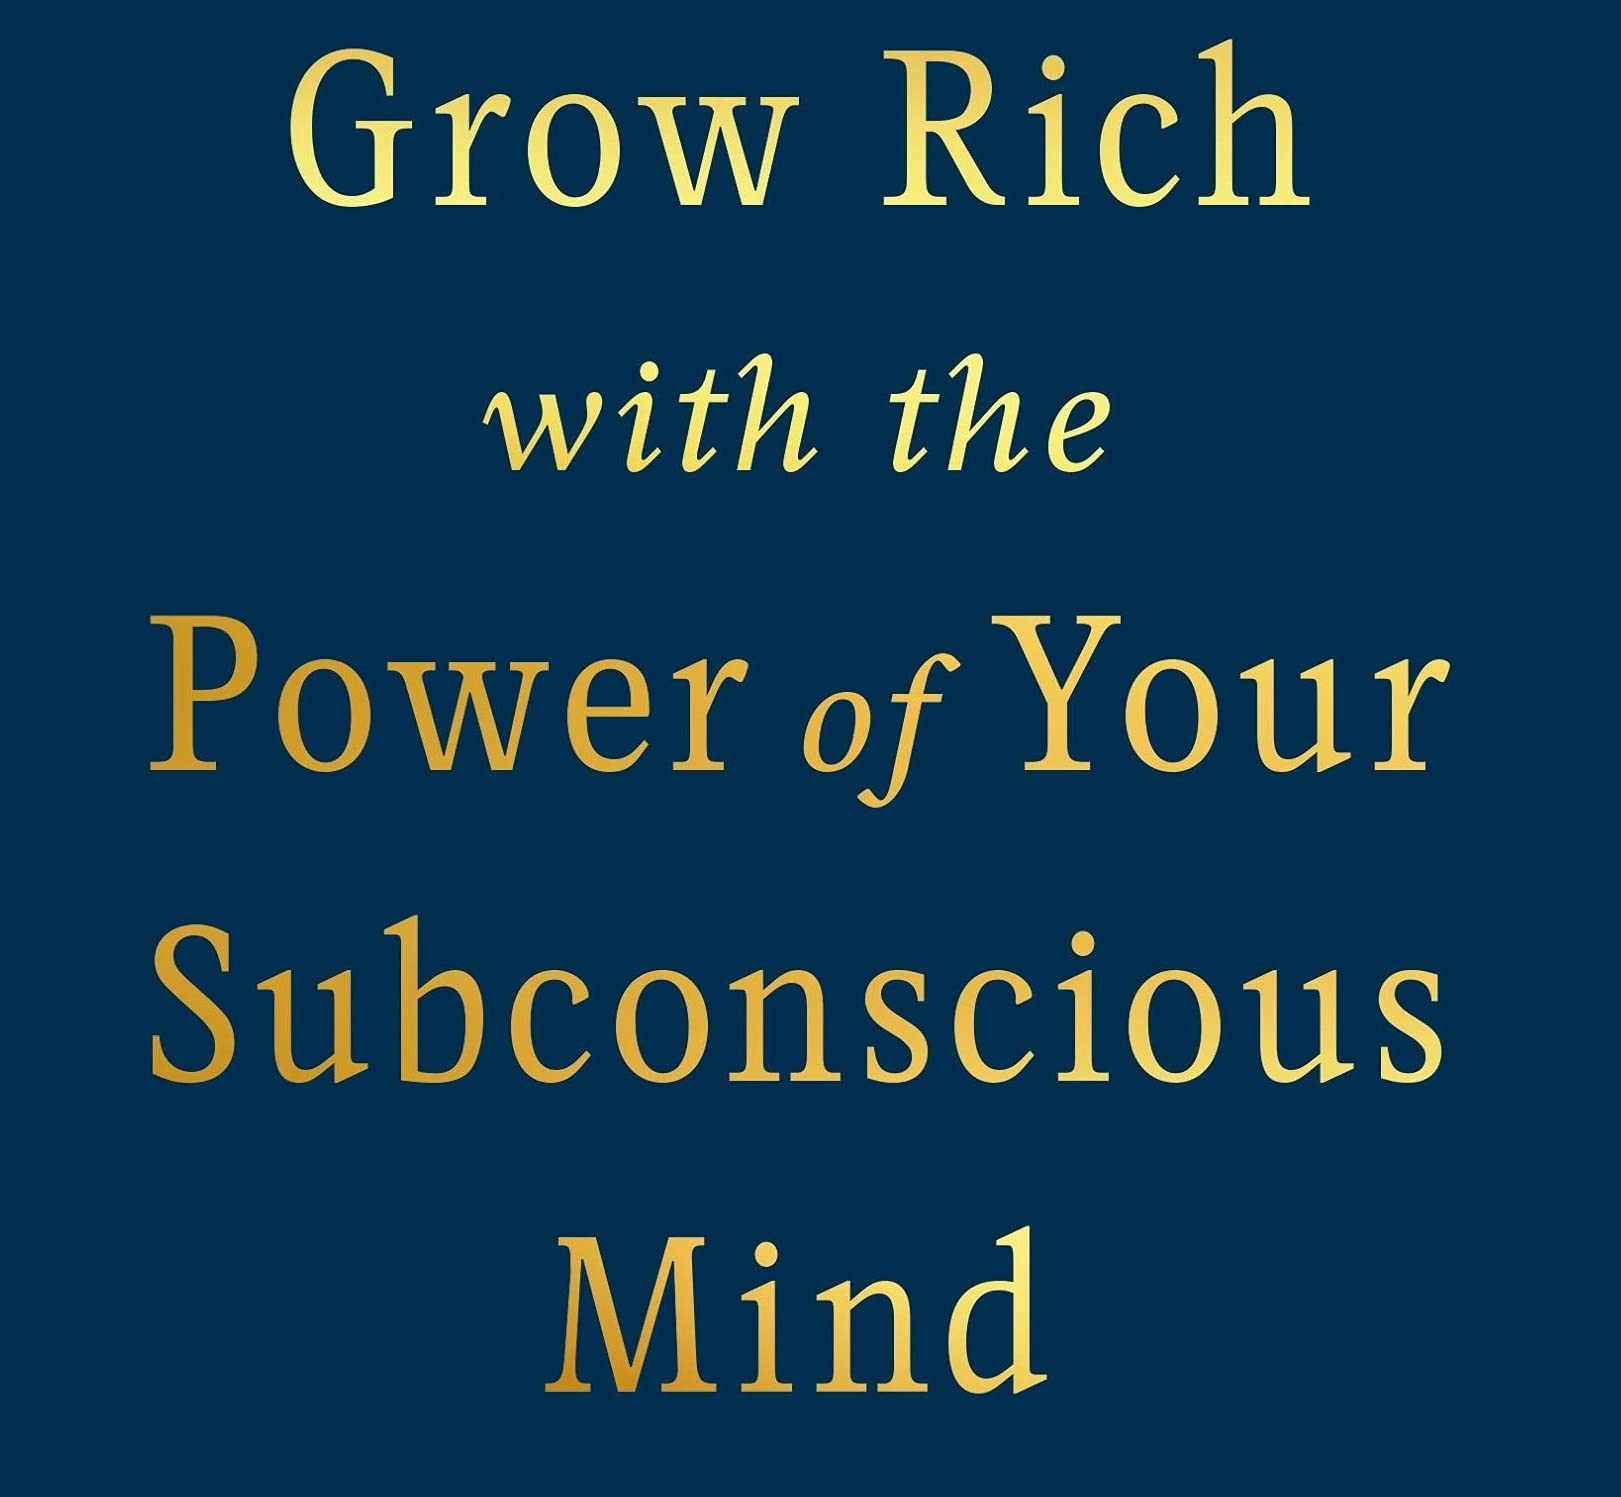 Grow Rich with the Power of Your Subconscious Mind: A New